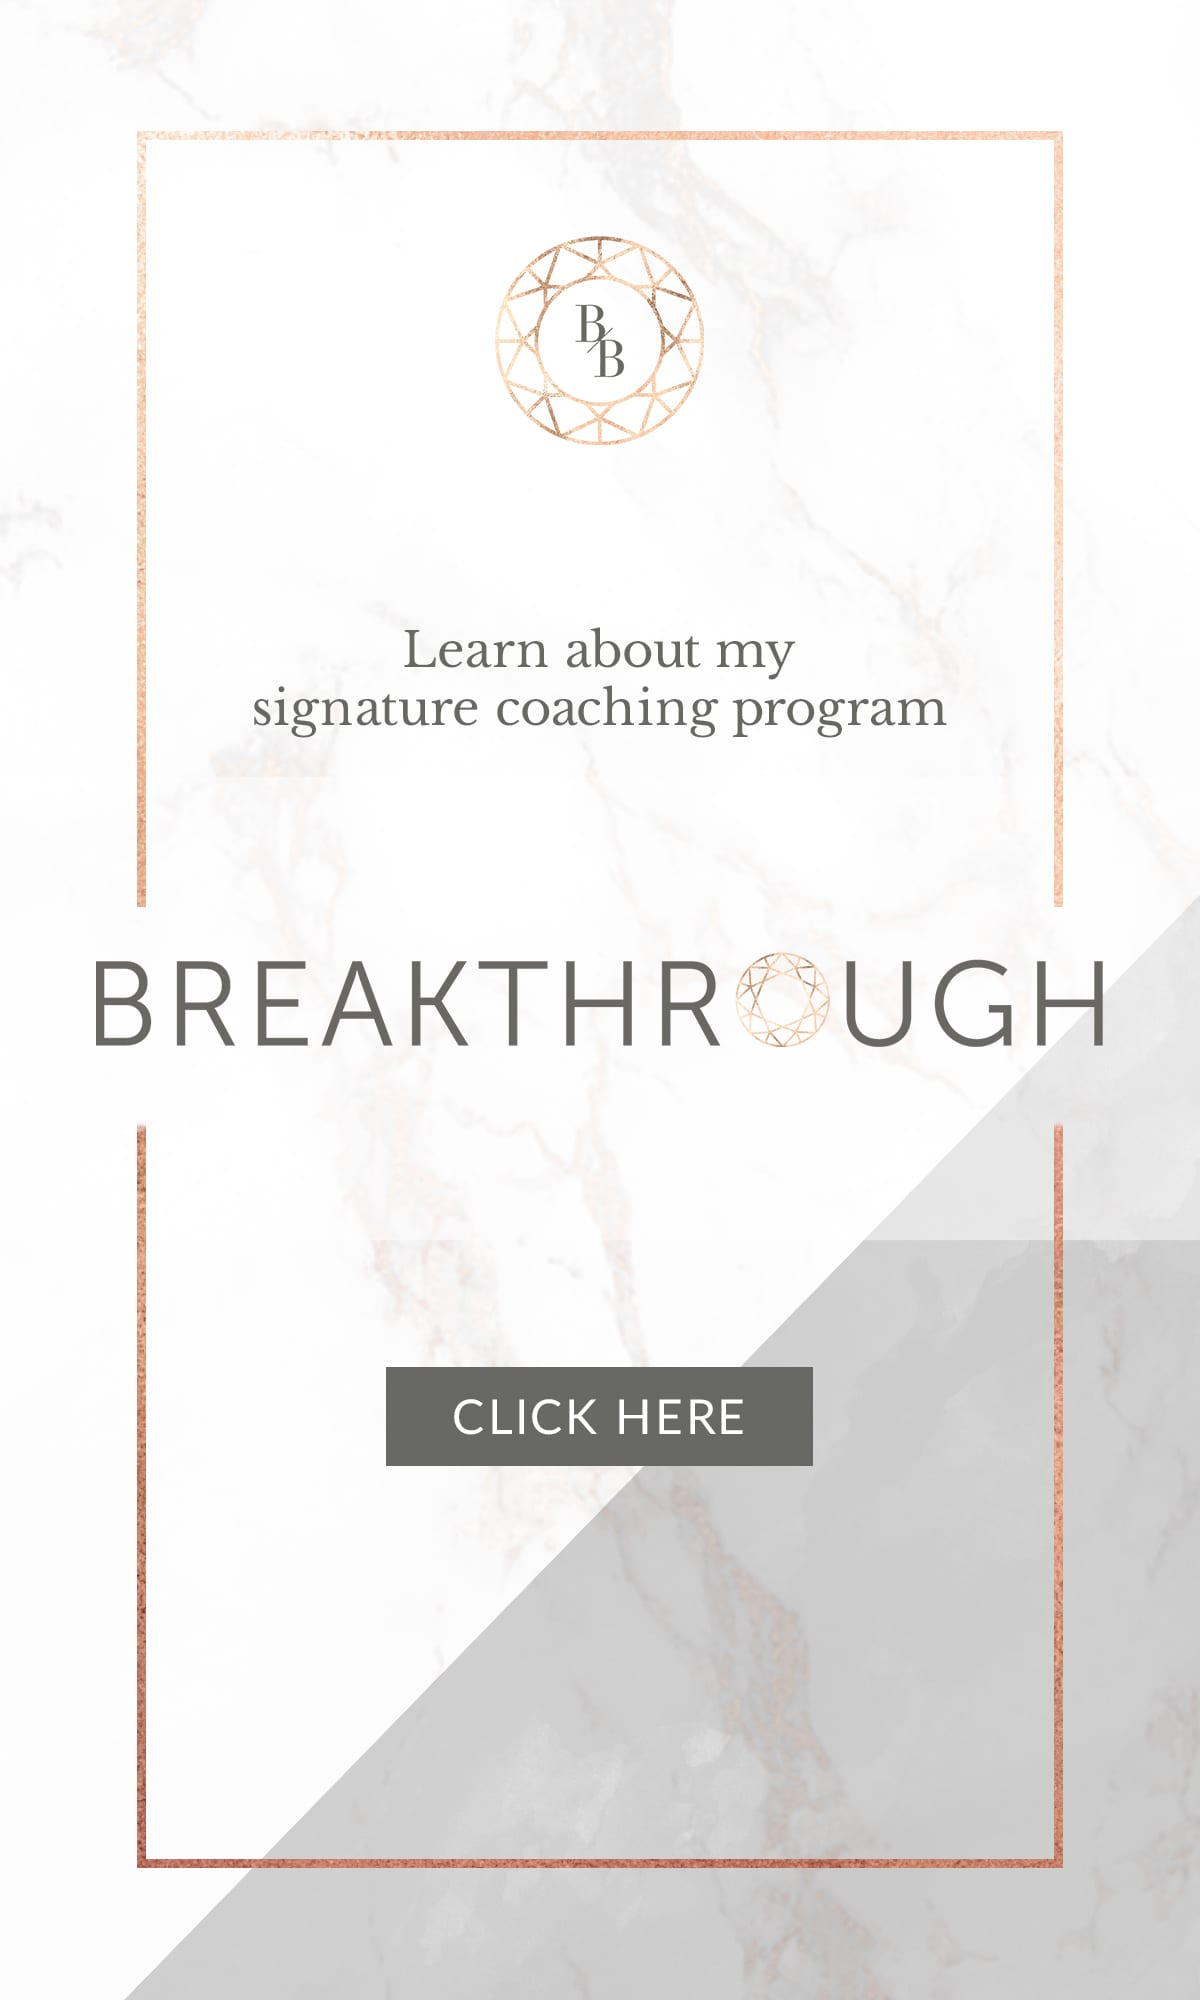 Learn about BREAKTHROUGH